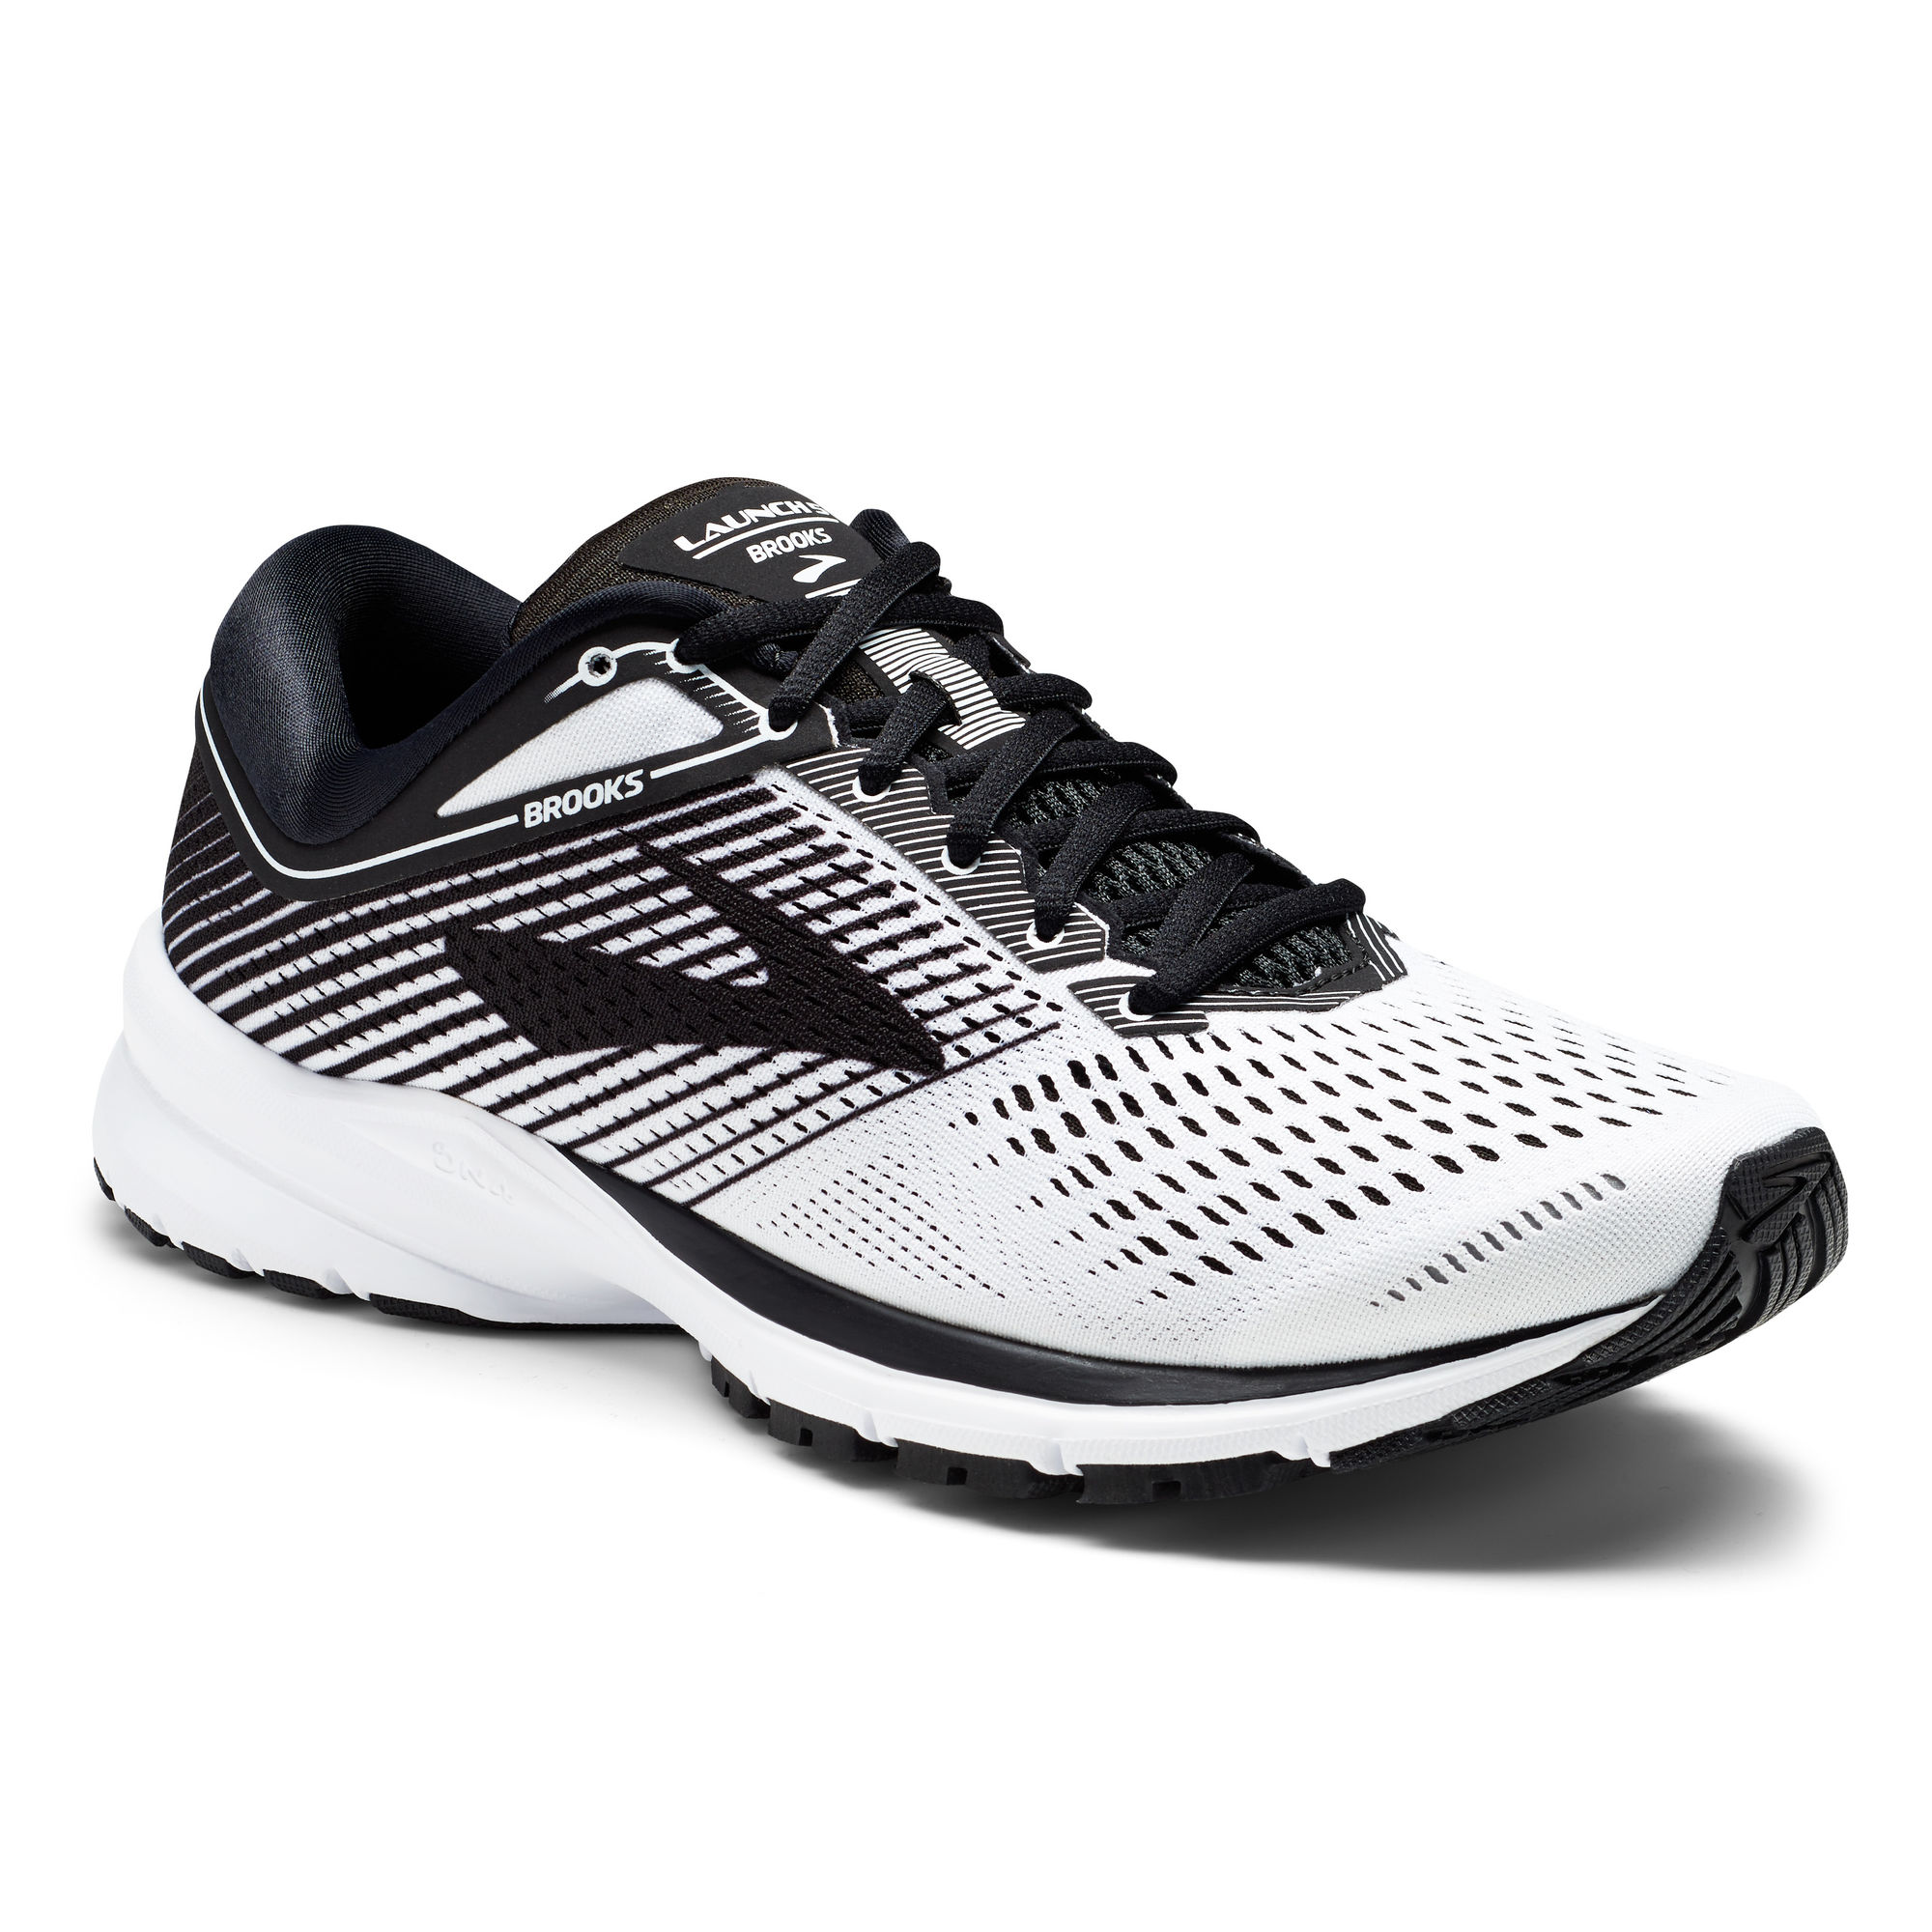 Brooks Launch 5 in Weiß Schwarz